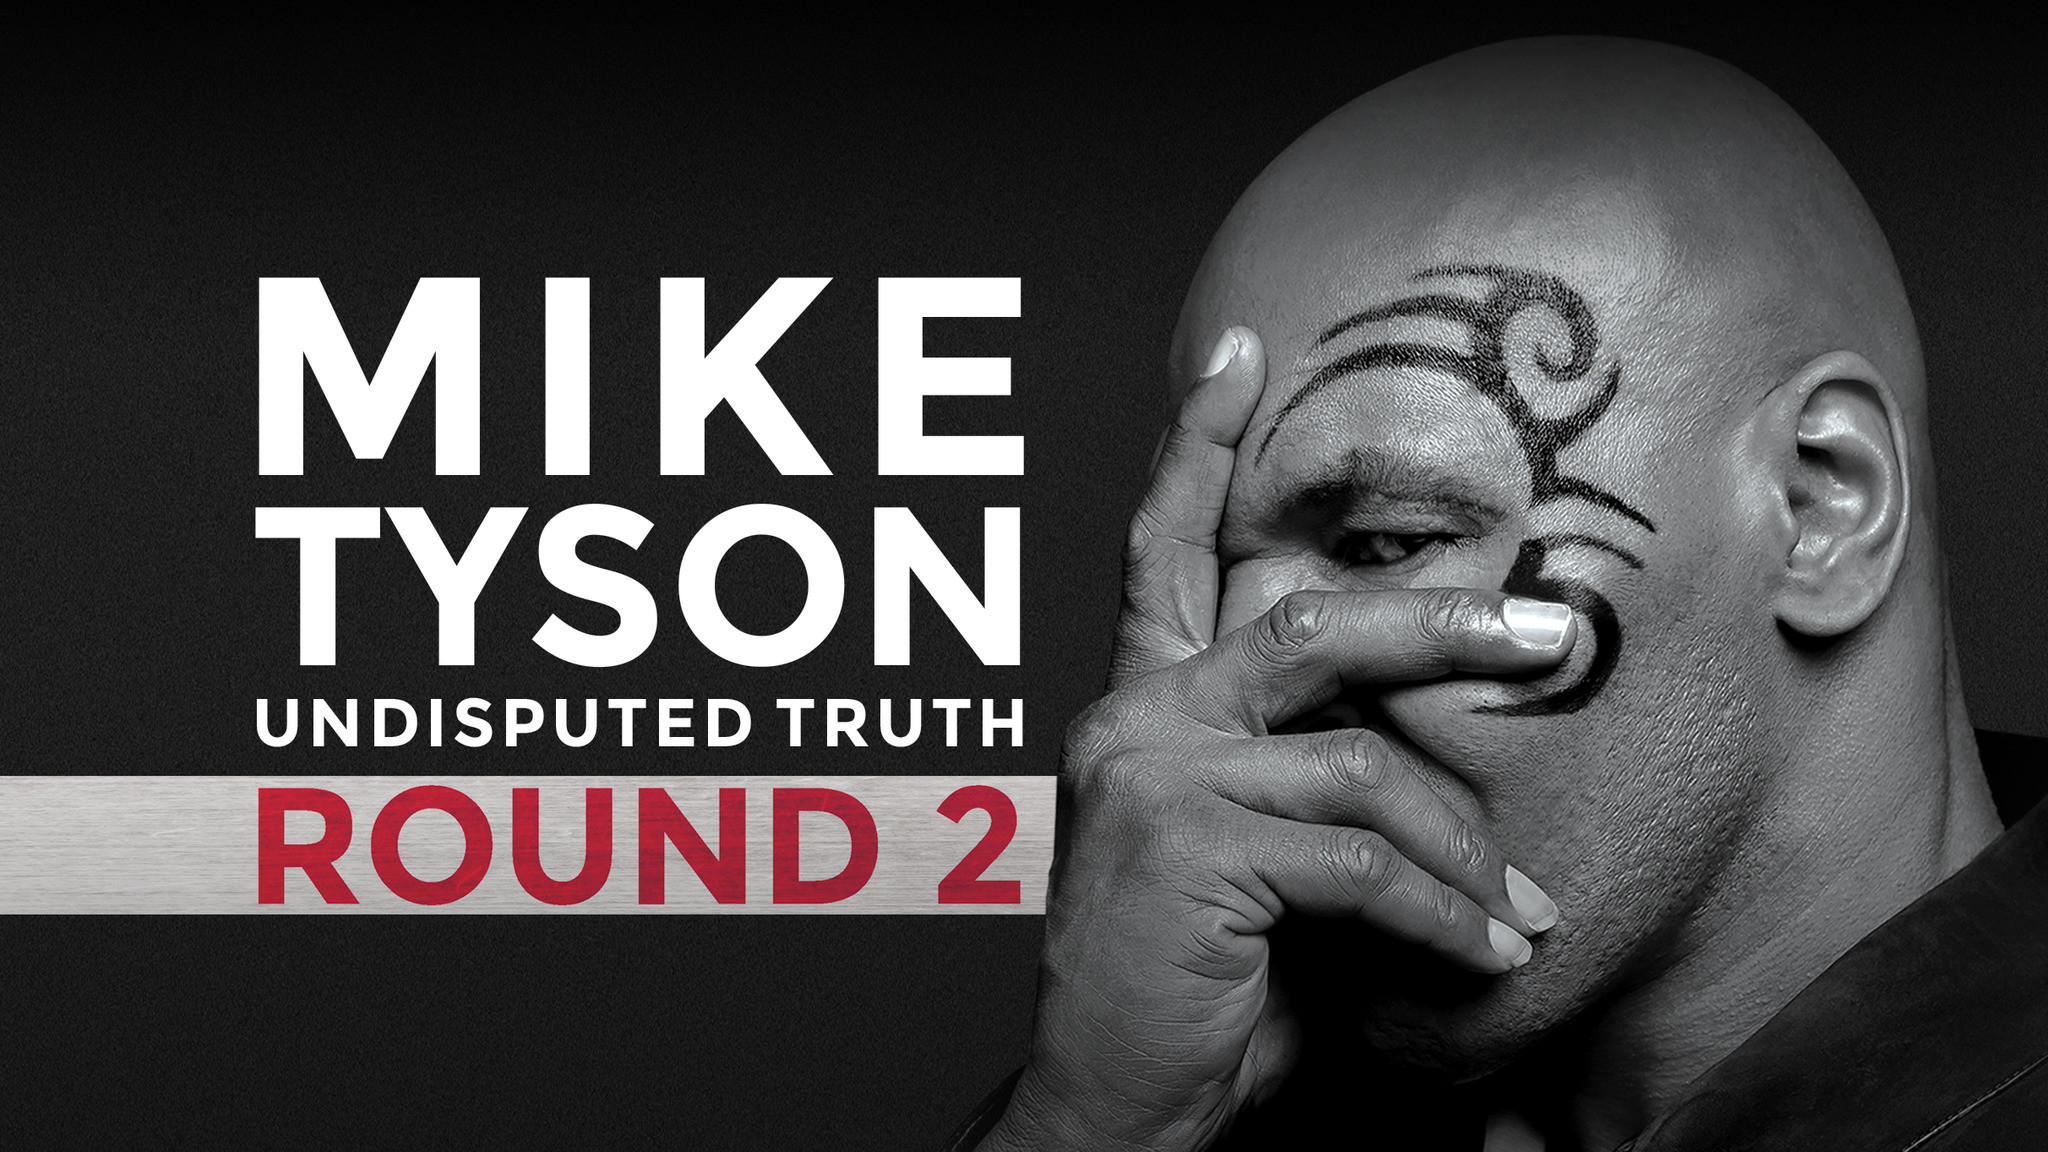 2048x1152 Mike Tyson Undisputed Truth Round 2